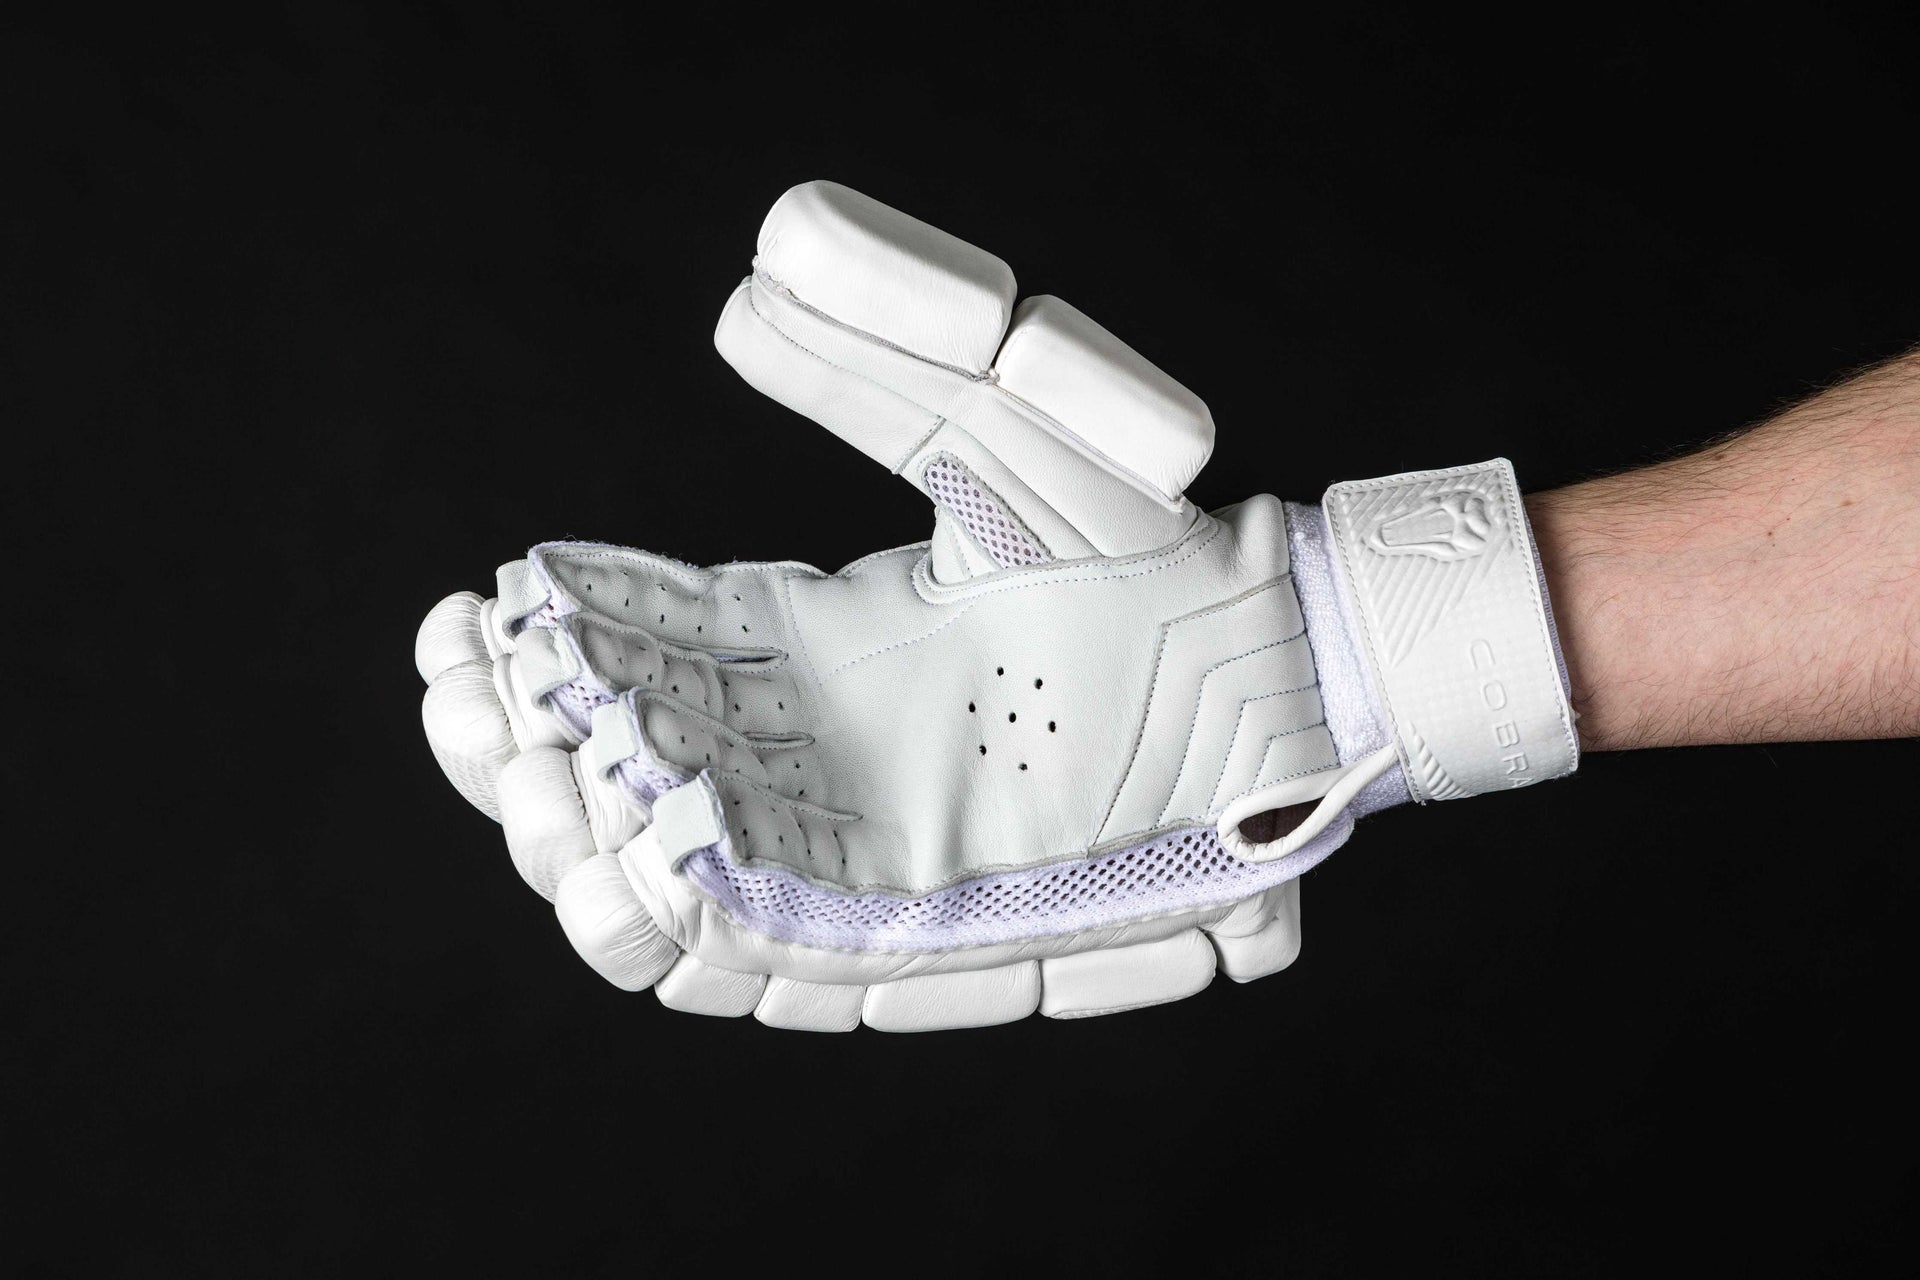 COBRA- LIMITED EDITION Batting Gloves